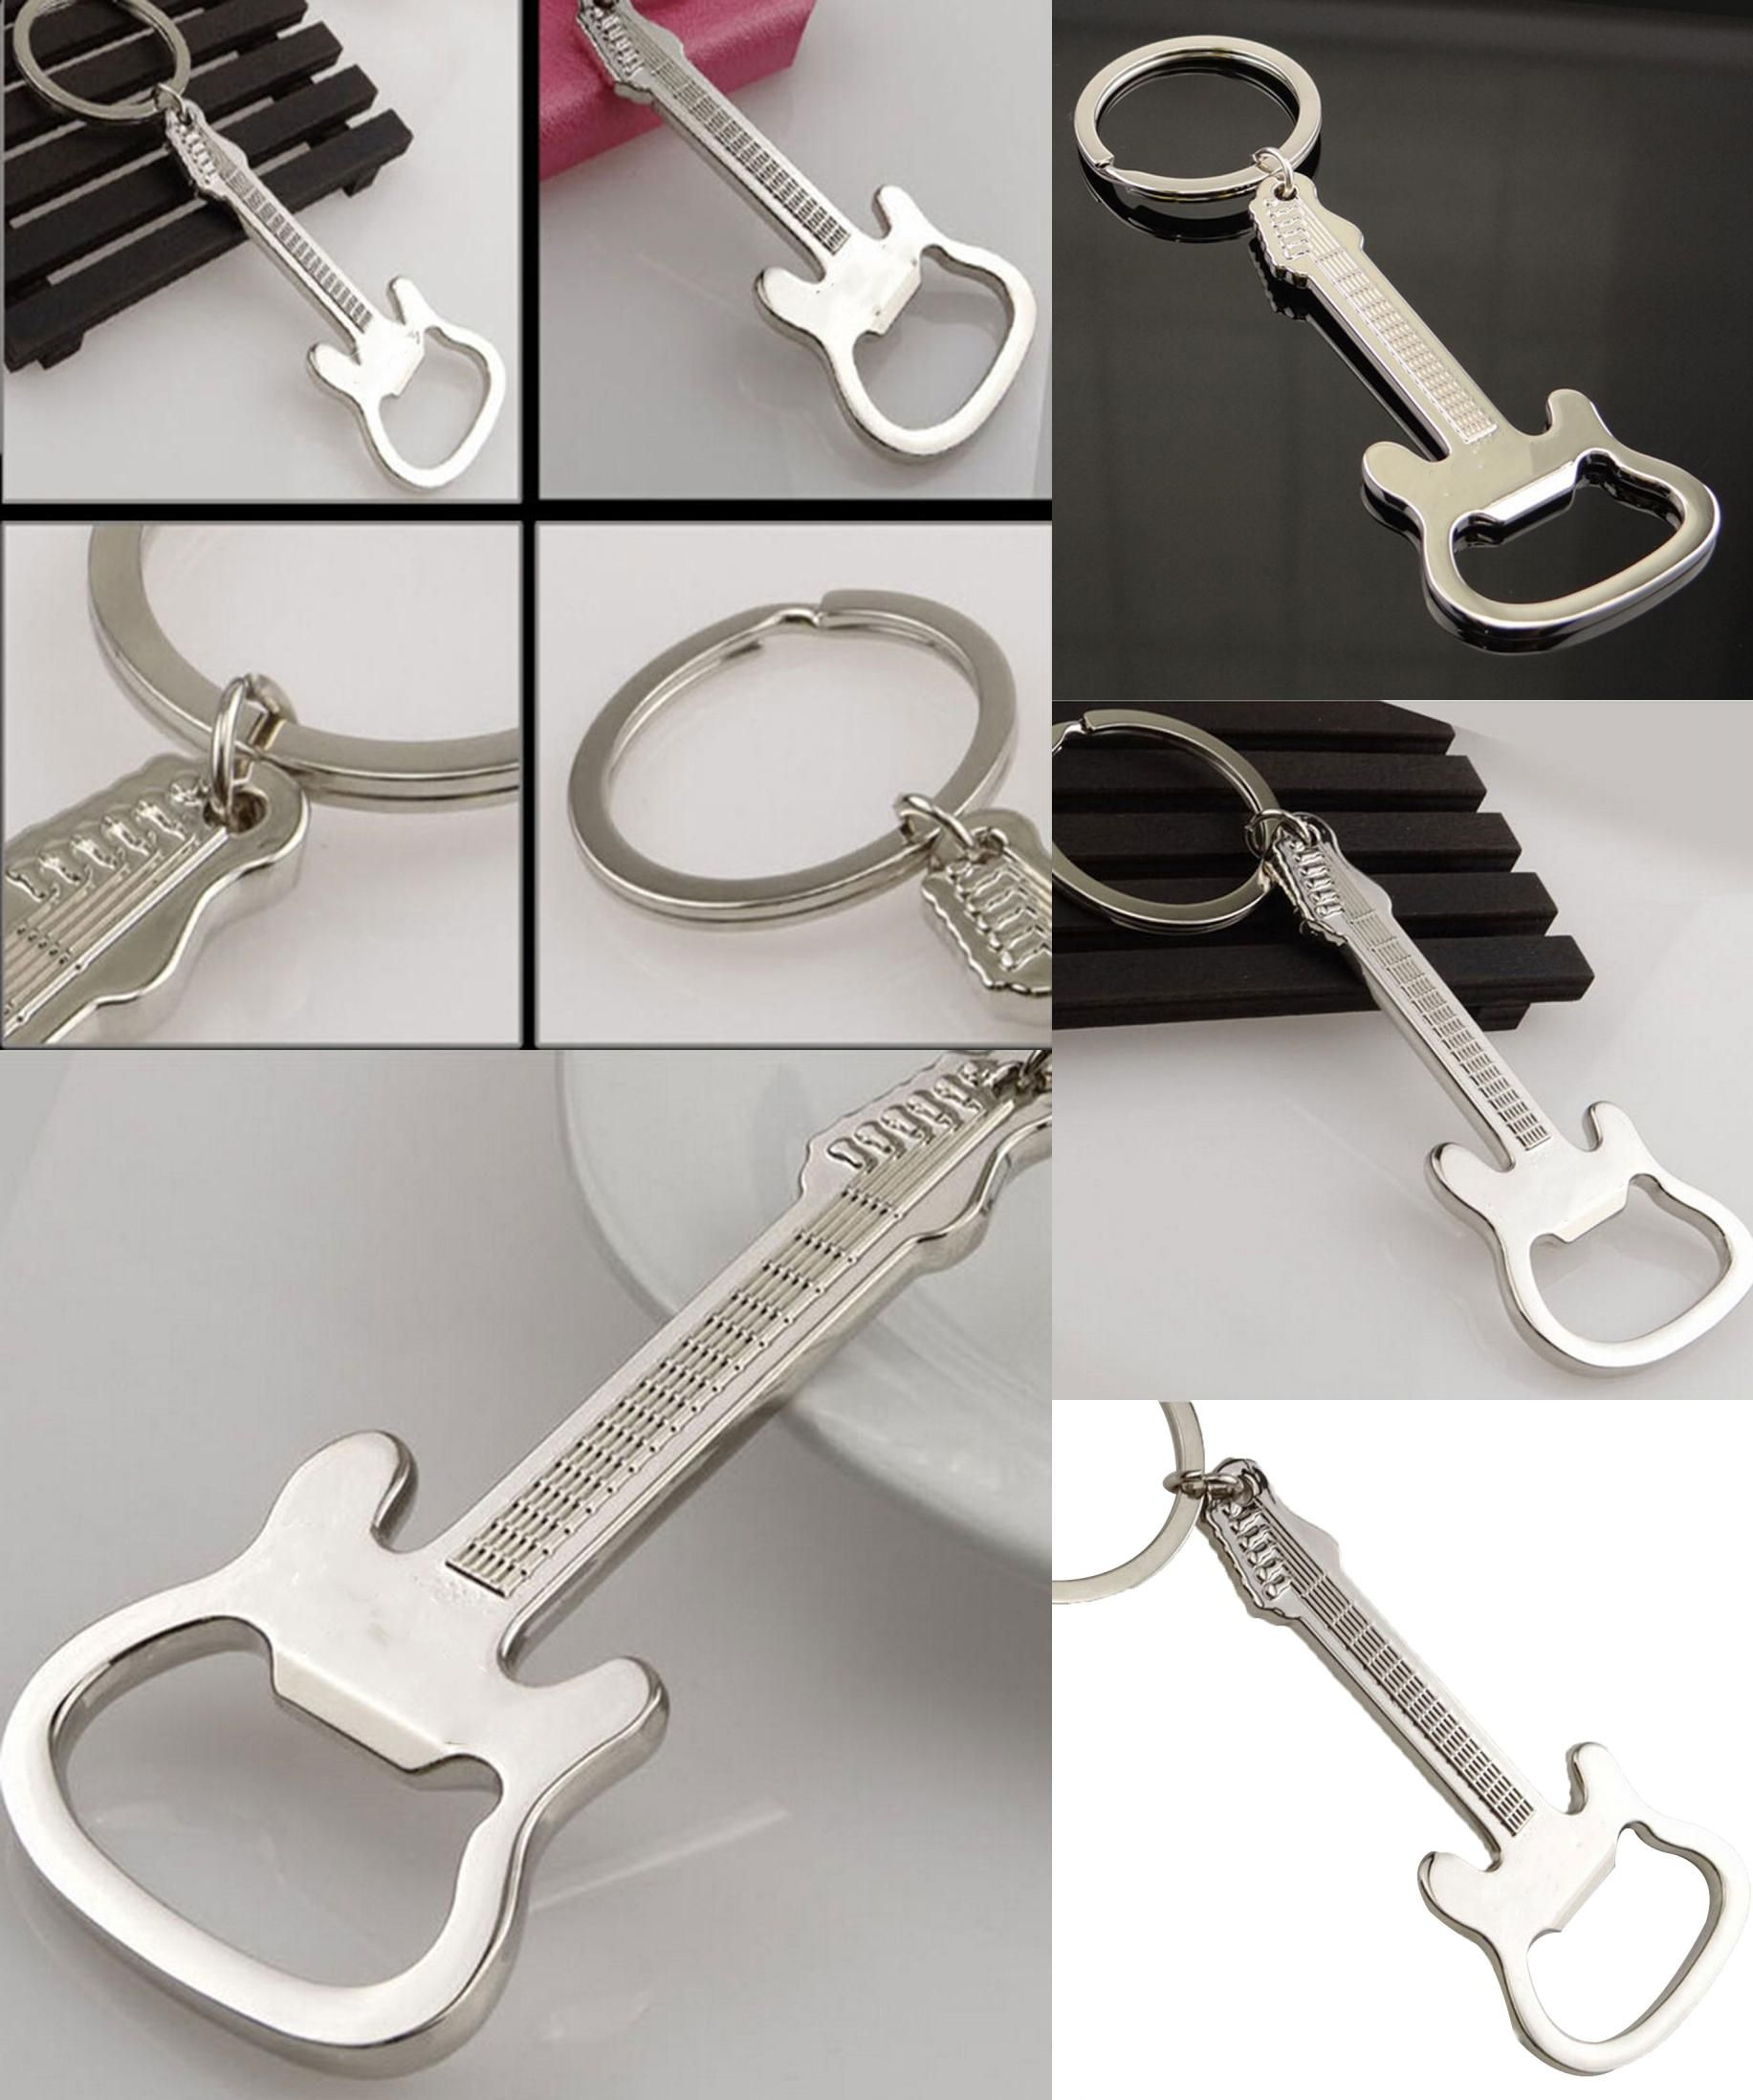 [Visit To Buy] Guitar Beer Bottle Opener Keychain Creative Kitchen  Accessories Key Ring Openers